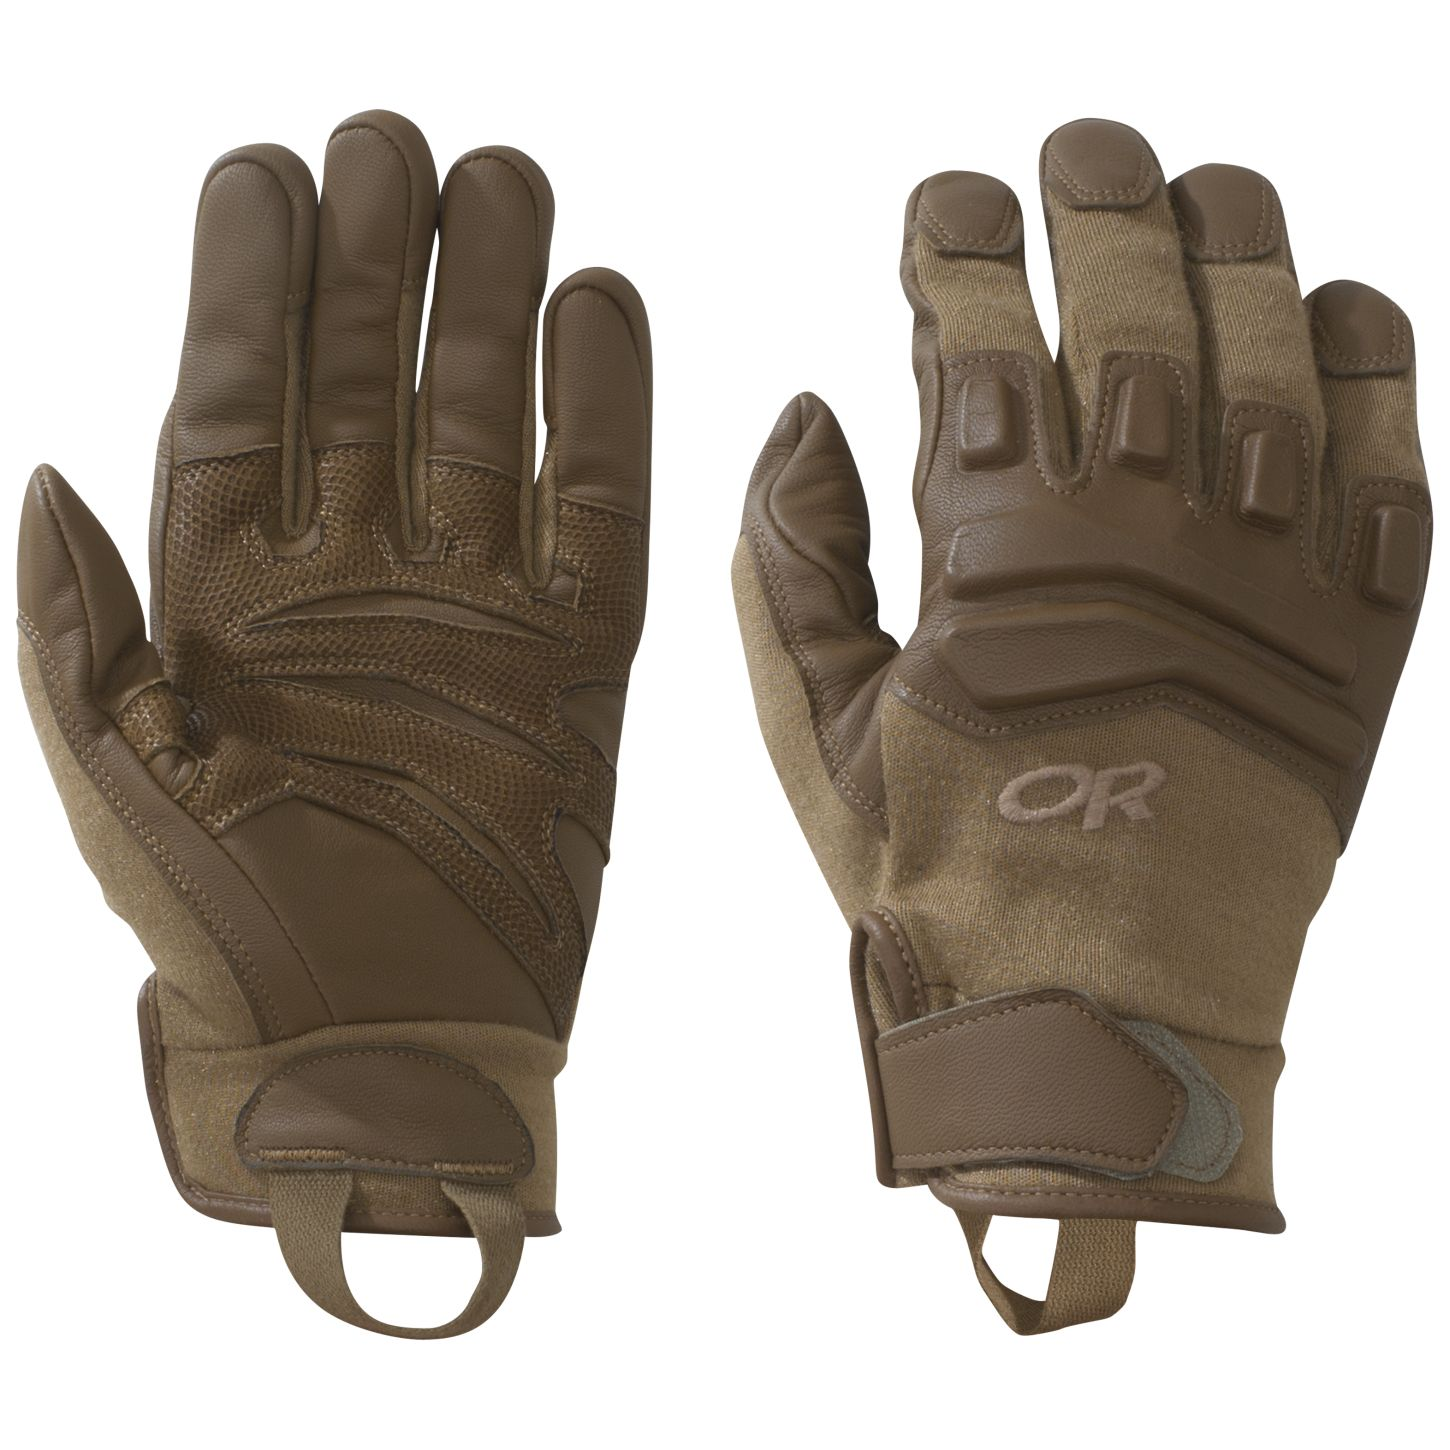 Outdoor Research Firemark Gloves coyote-30